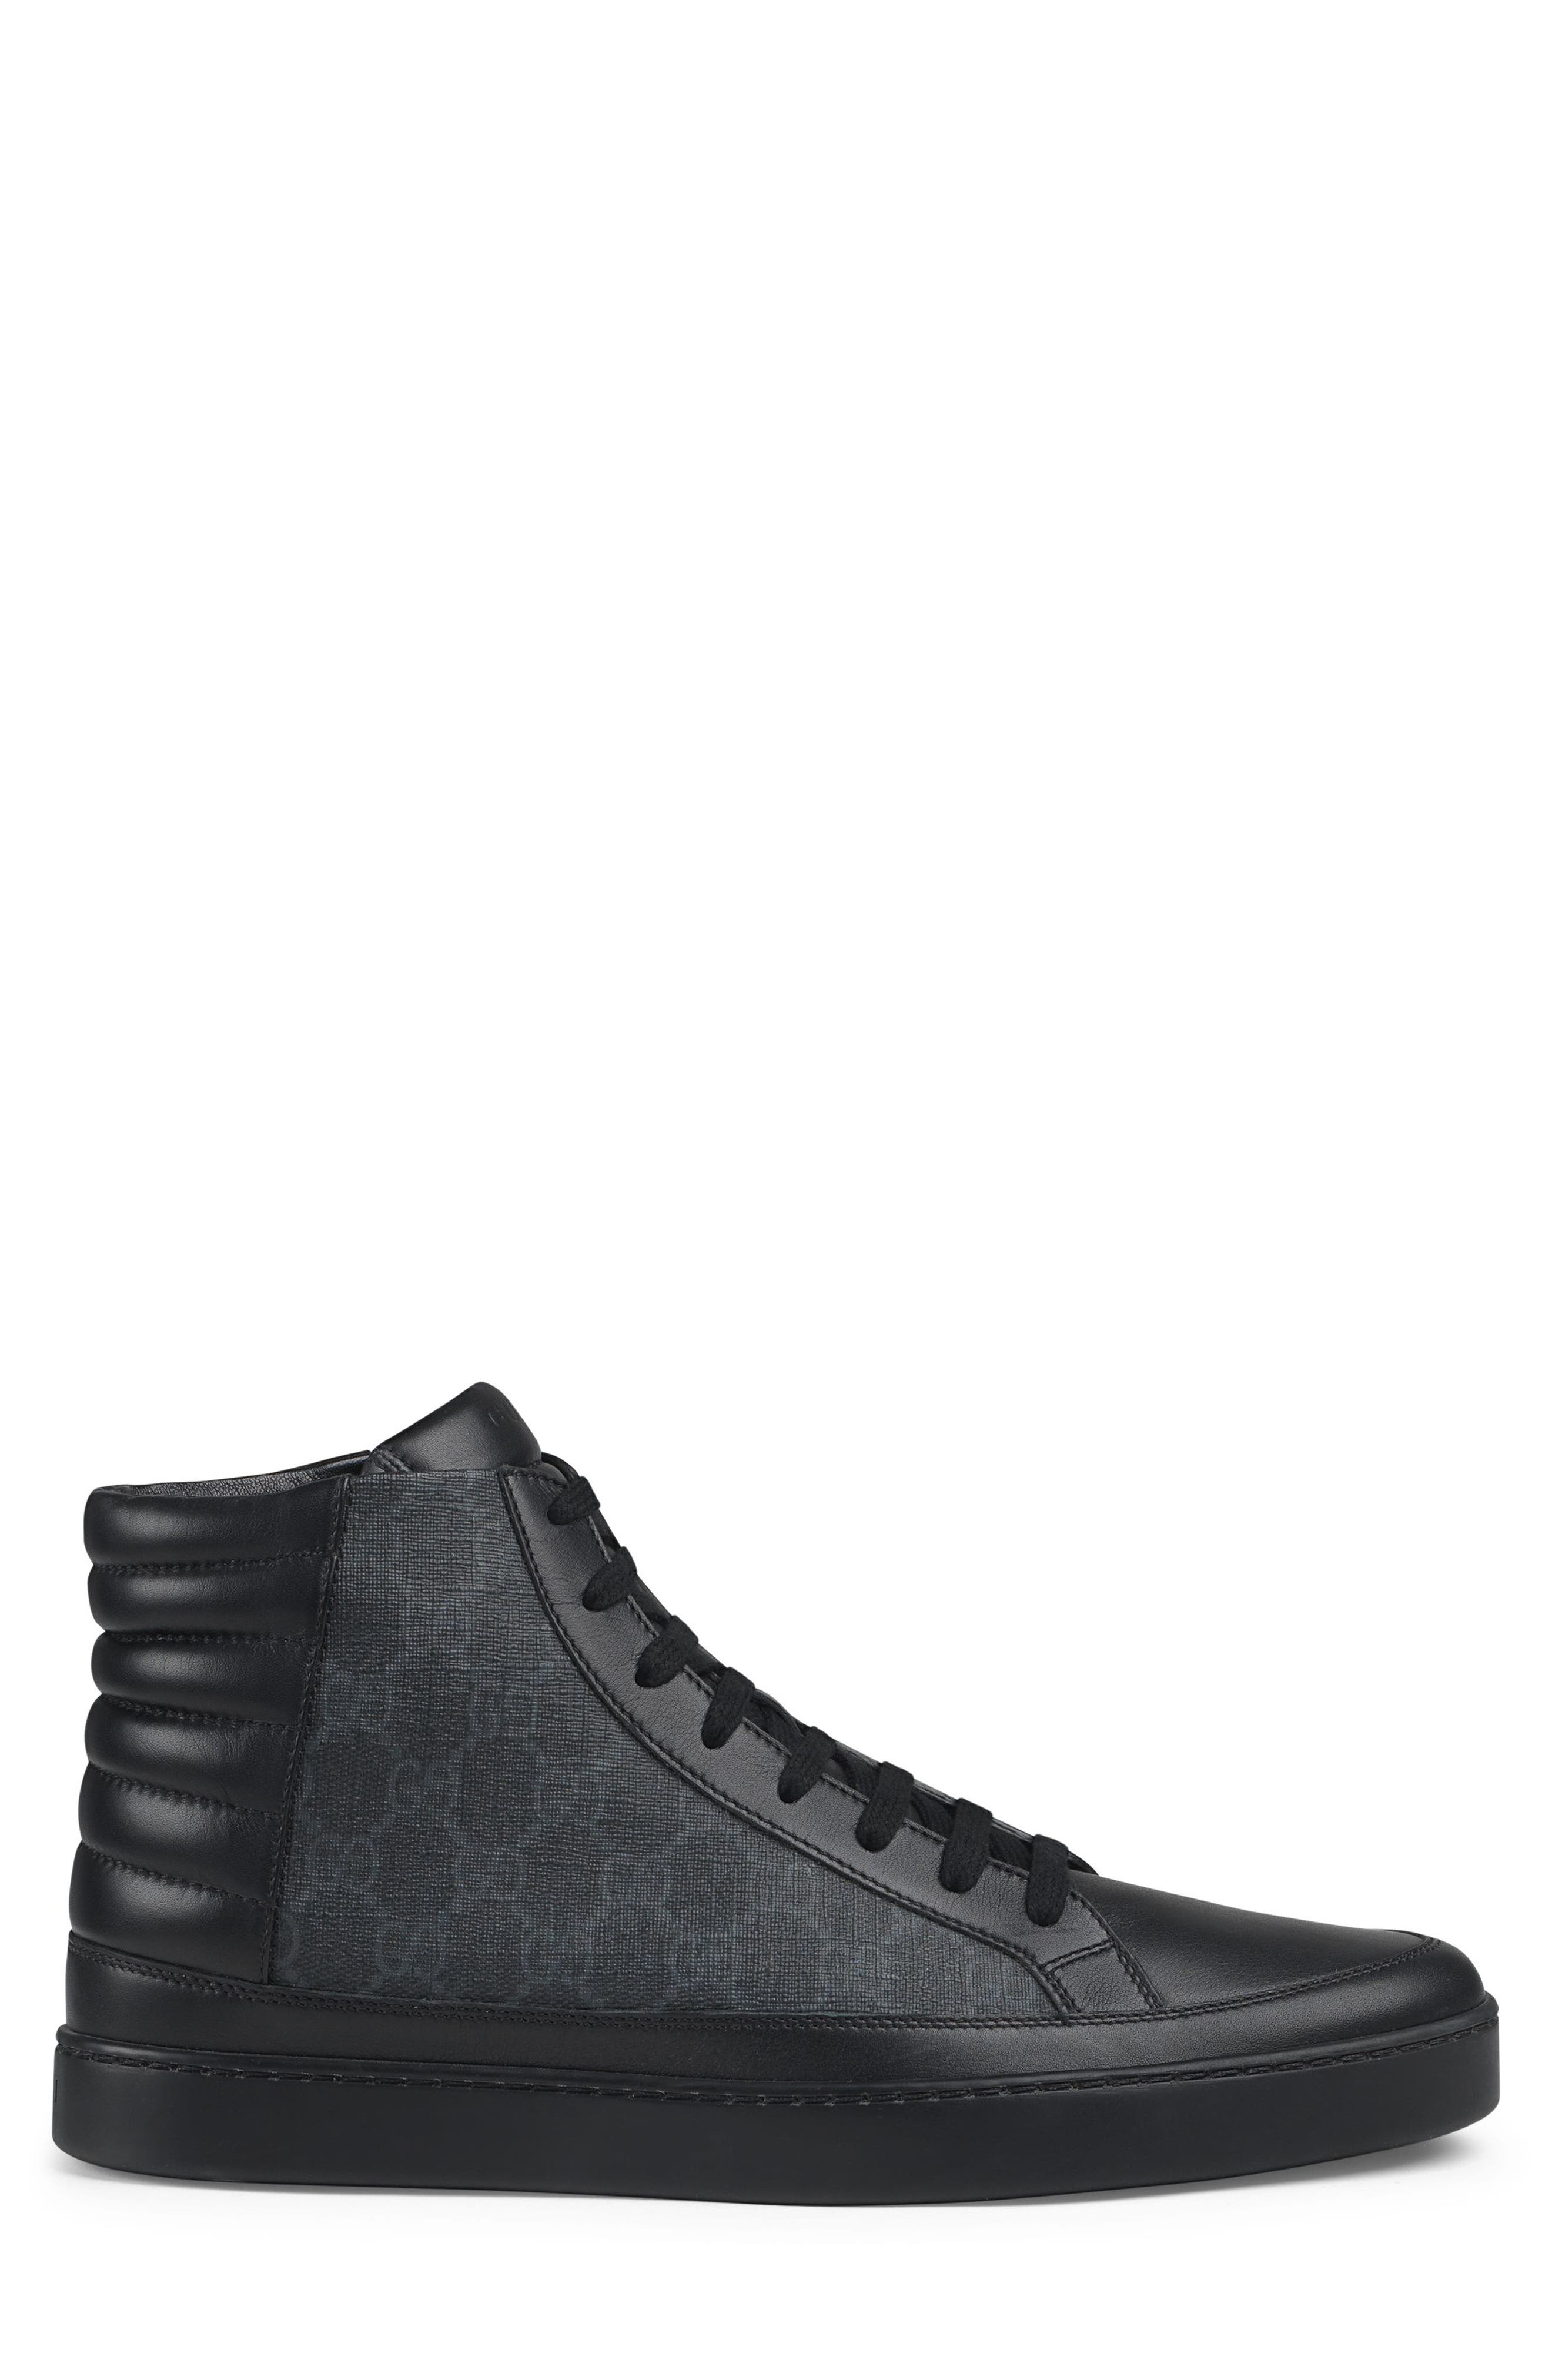 'Common' High Top Sneaker,                             Alternate thumbnail 2, color,                             Nero Leather